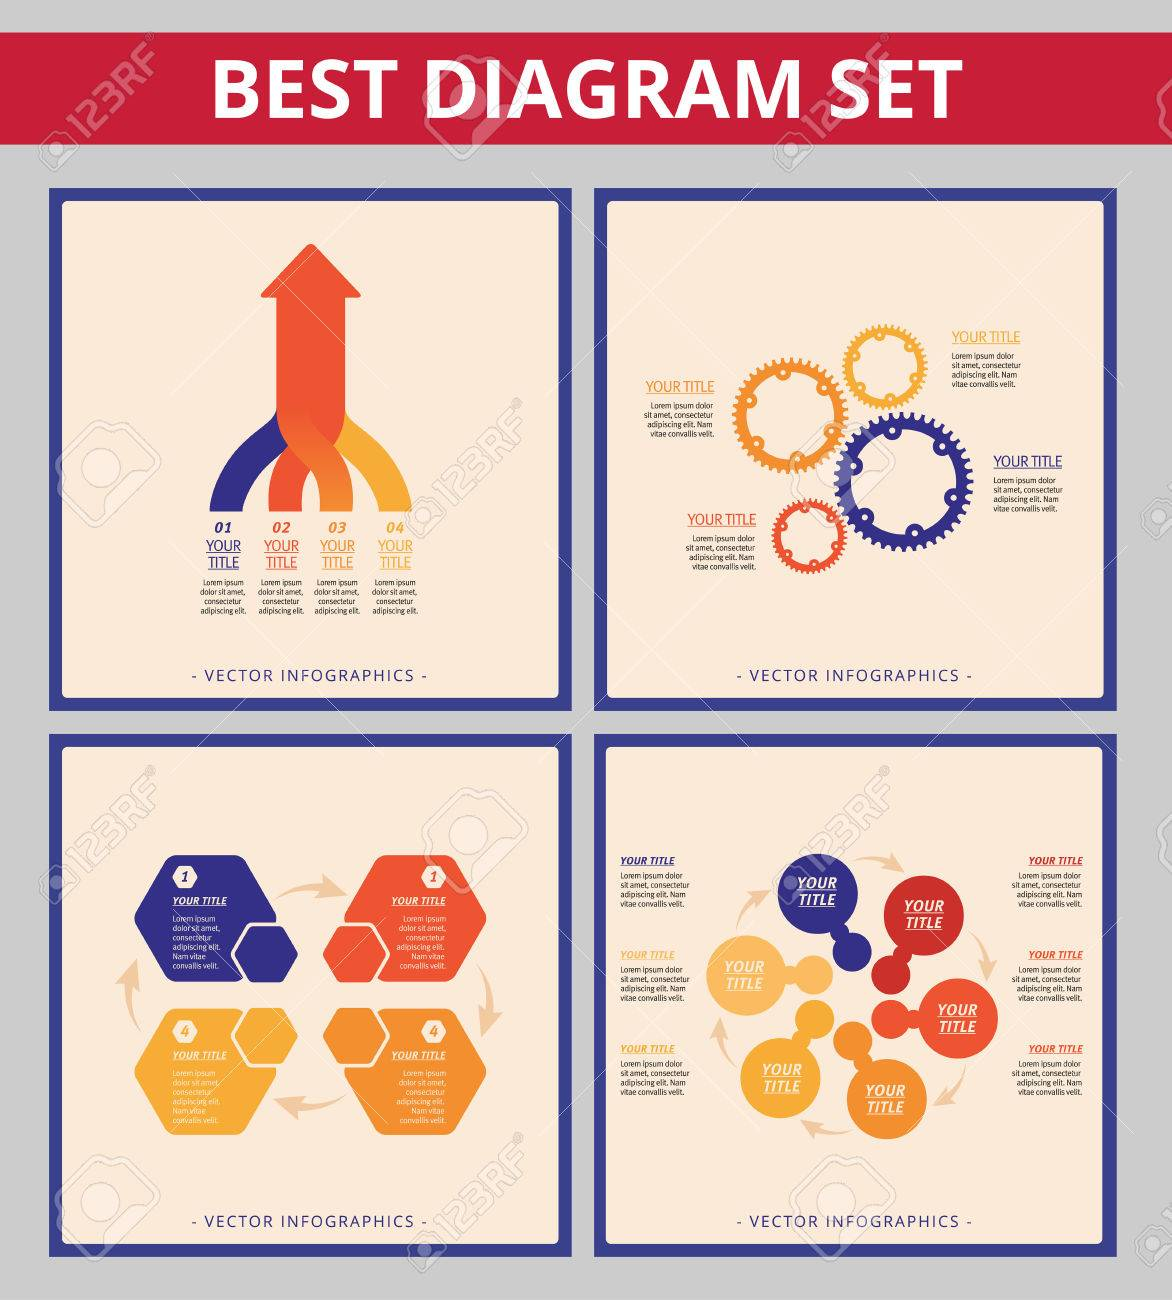 business diagram set editable templates for process diagram Internal Gear Diagram business diagram set editable templates for process diagram gear wheel chart and arrow diagram